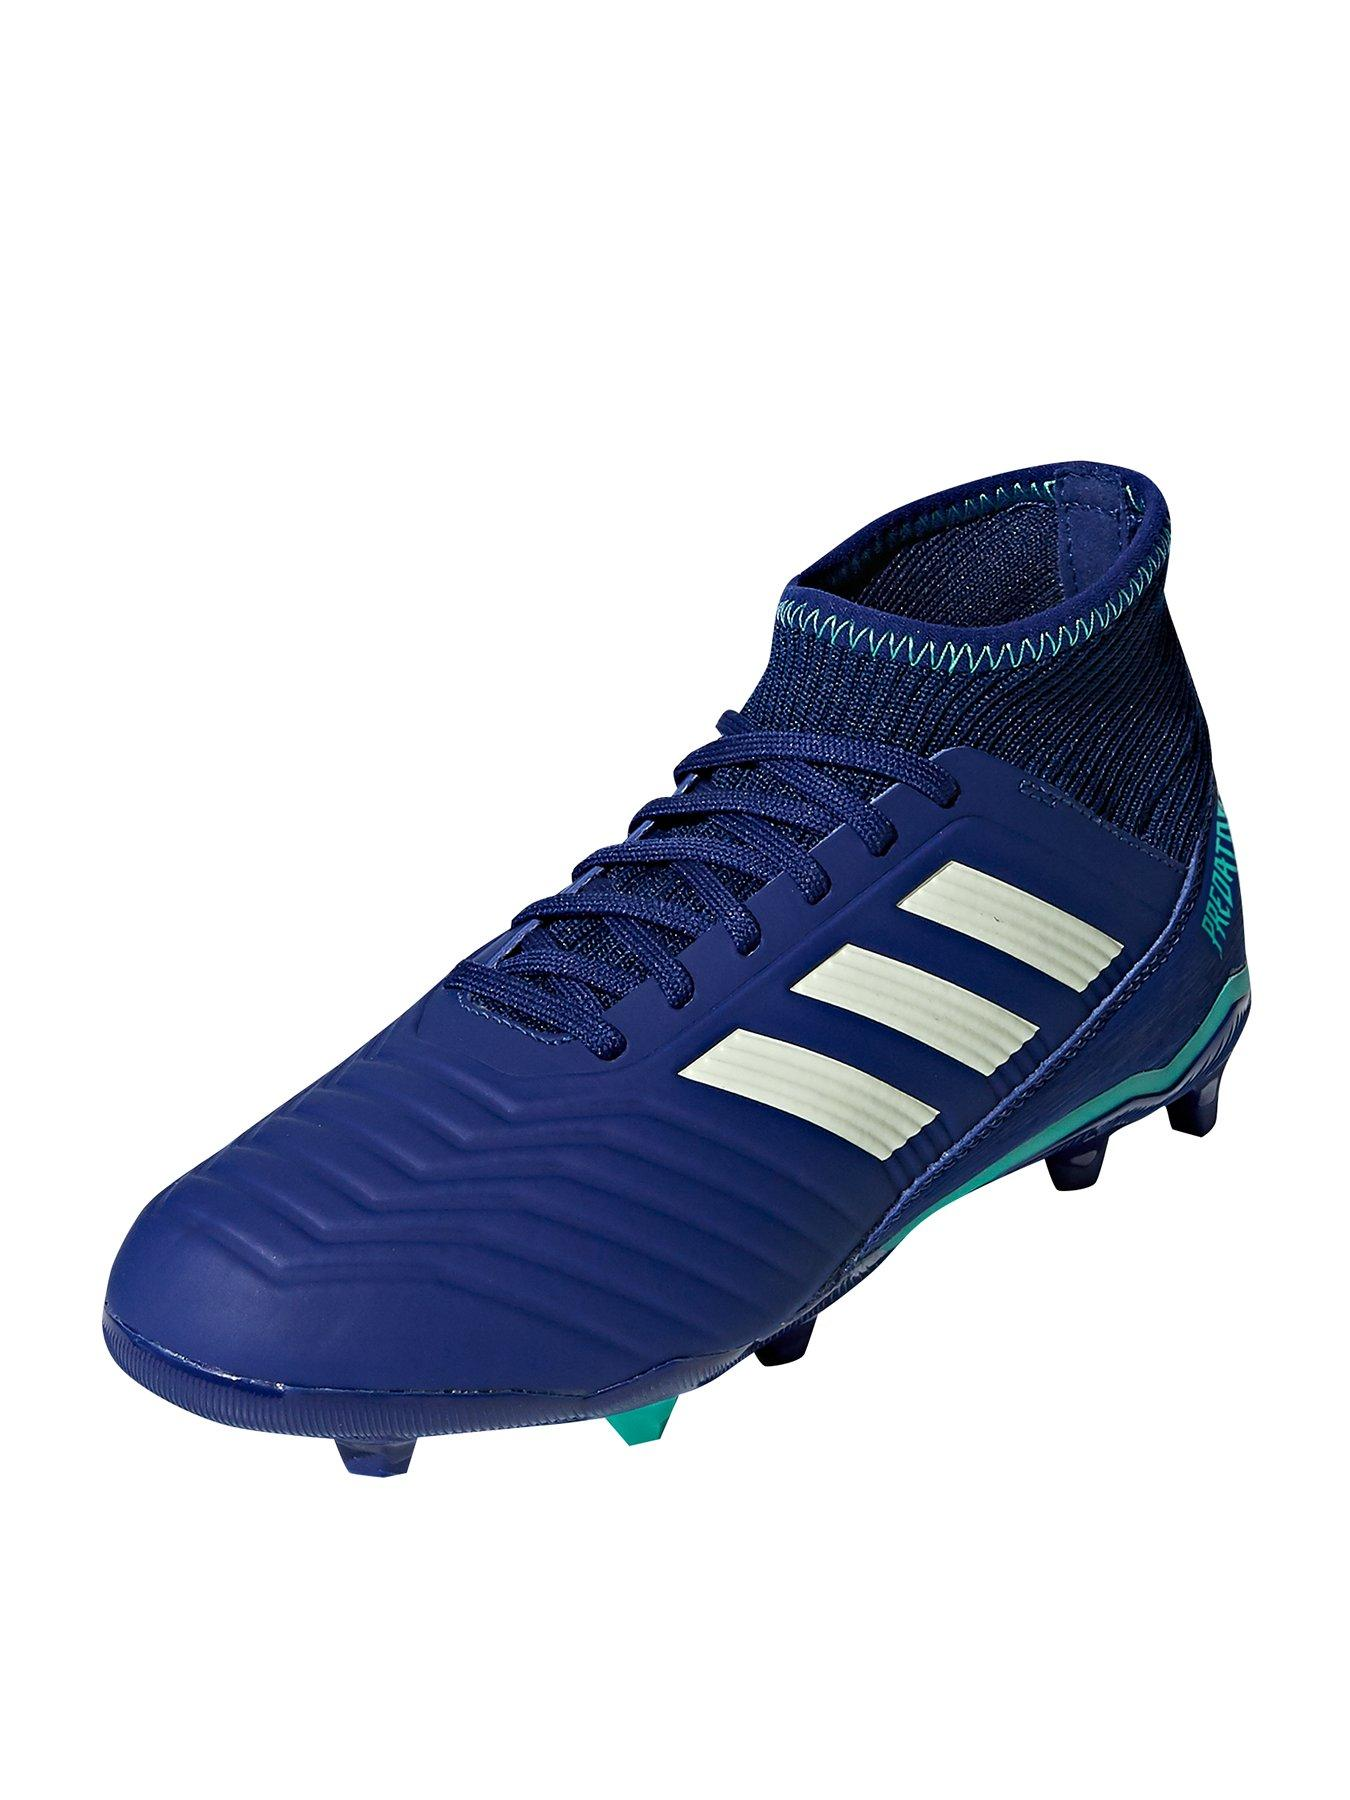 adidas shoes football predator games in ps4 not in xbox 629874